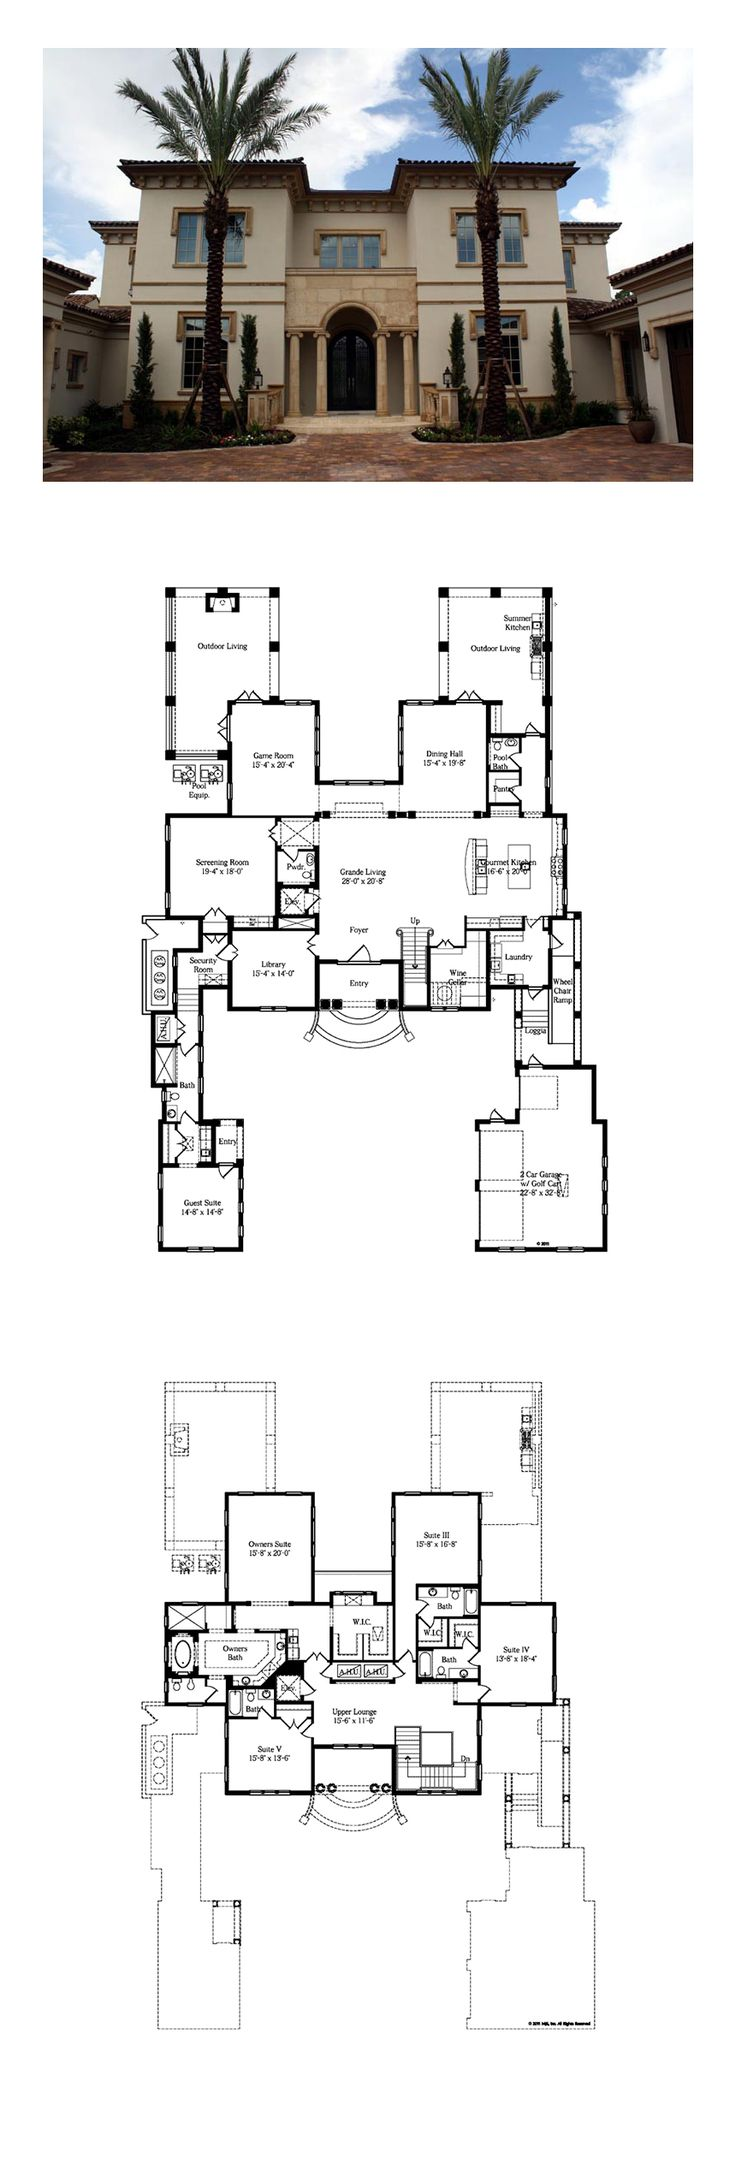 48 best images about italian house plans on pinterest for Italian villa floor plans